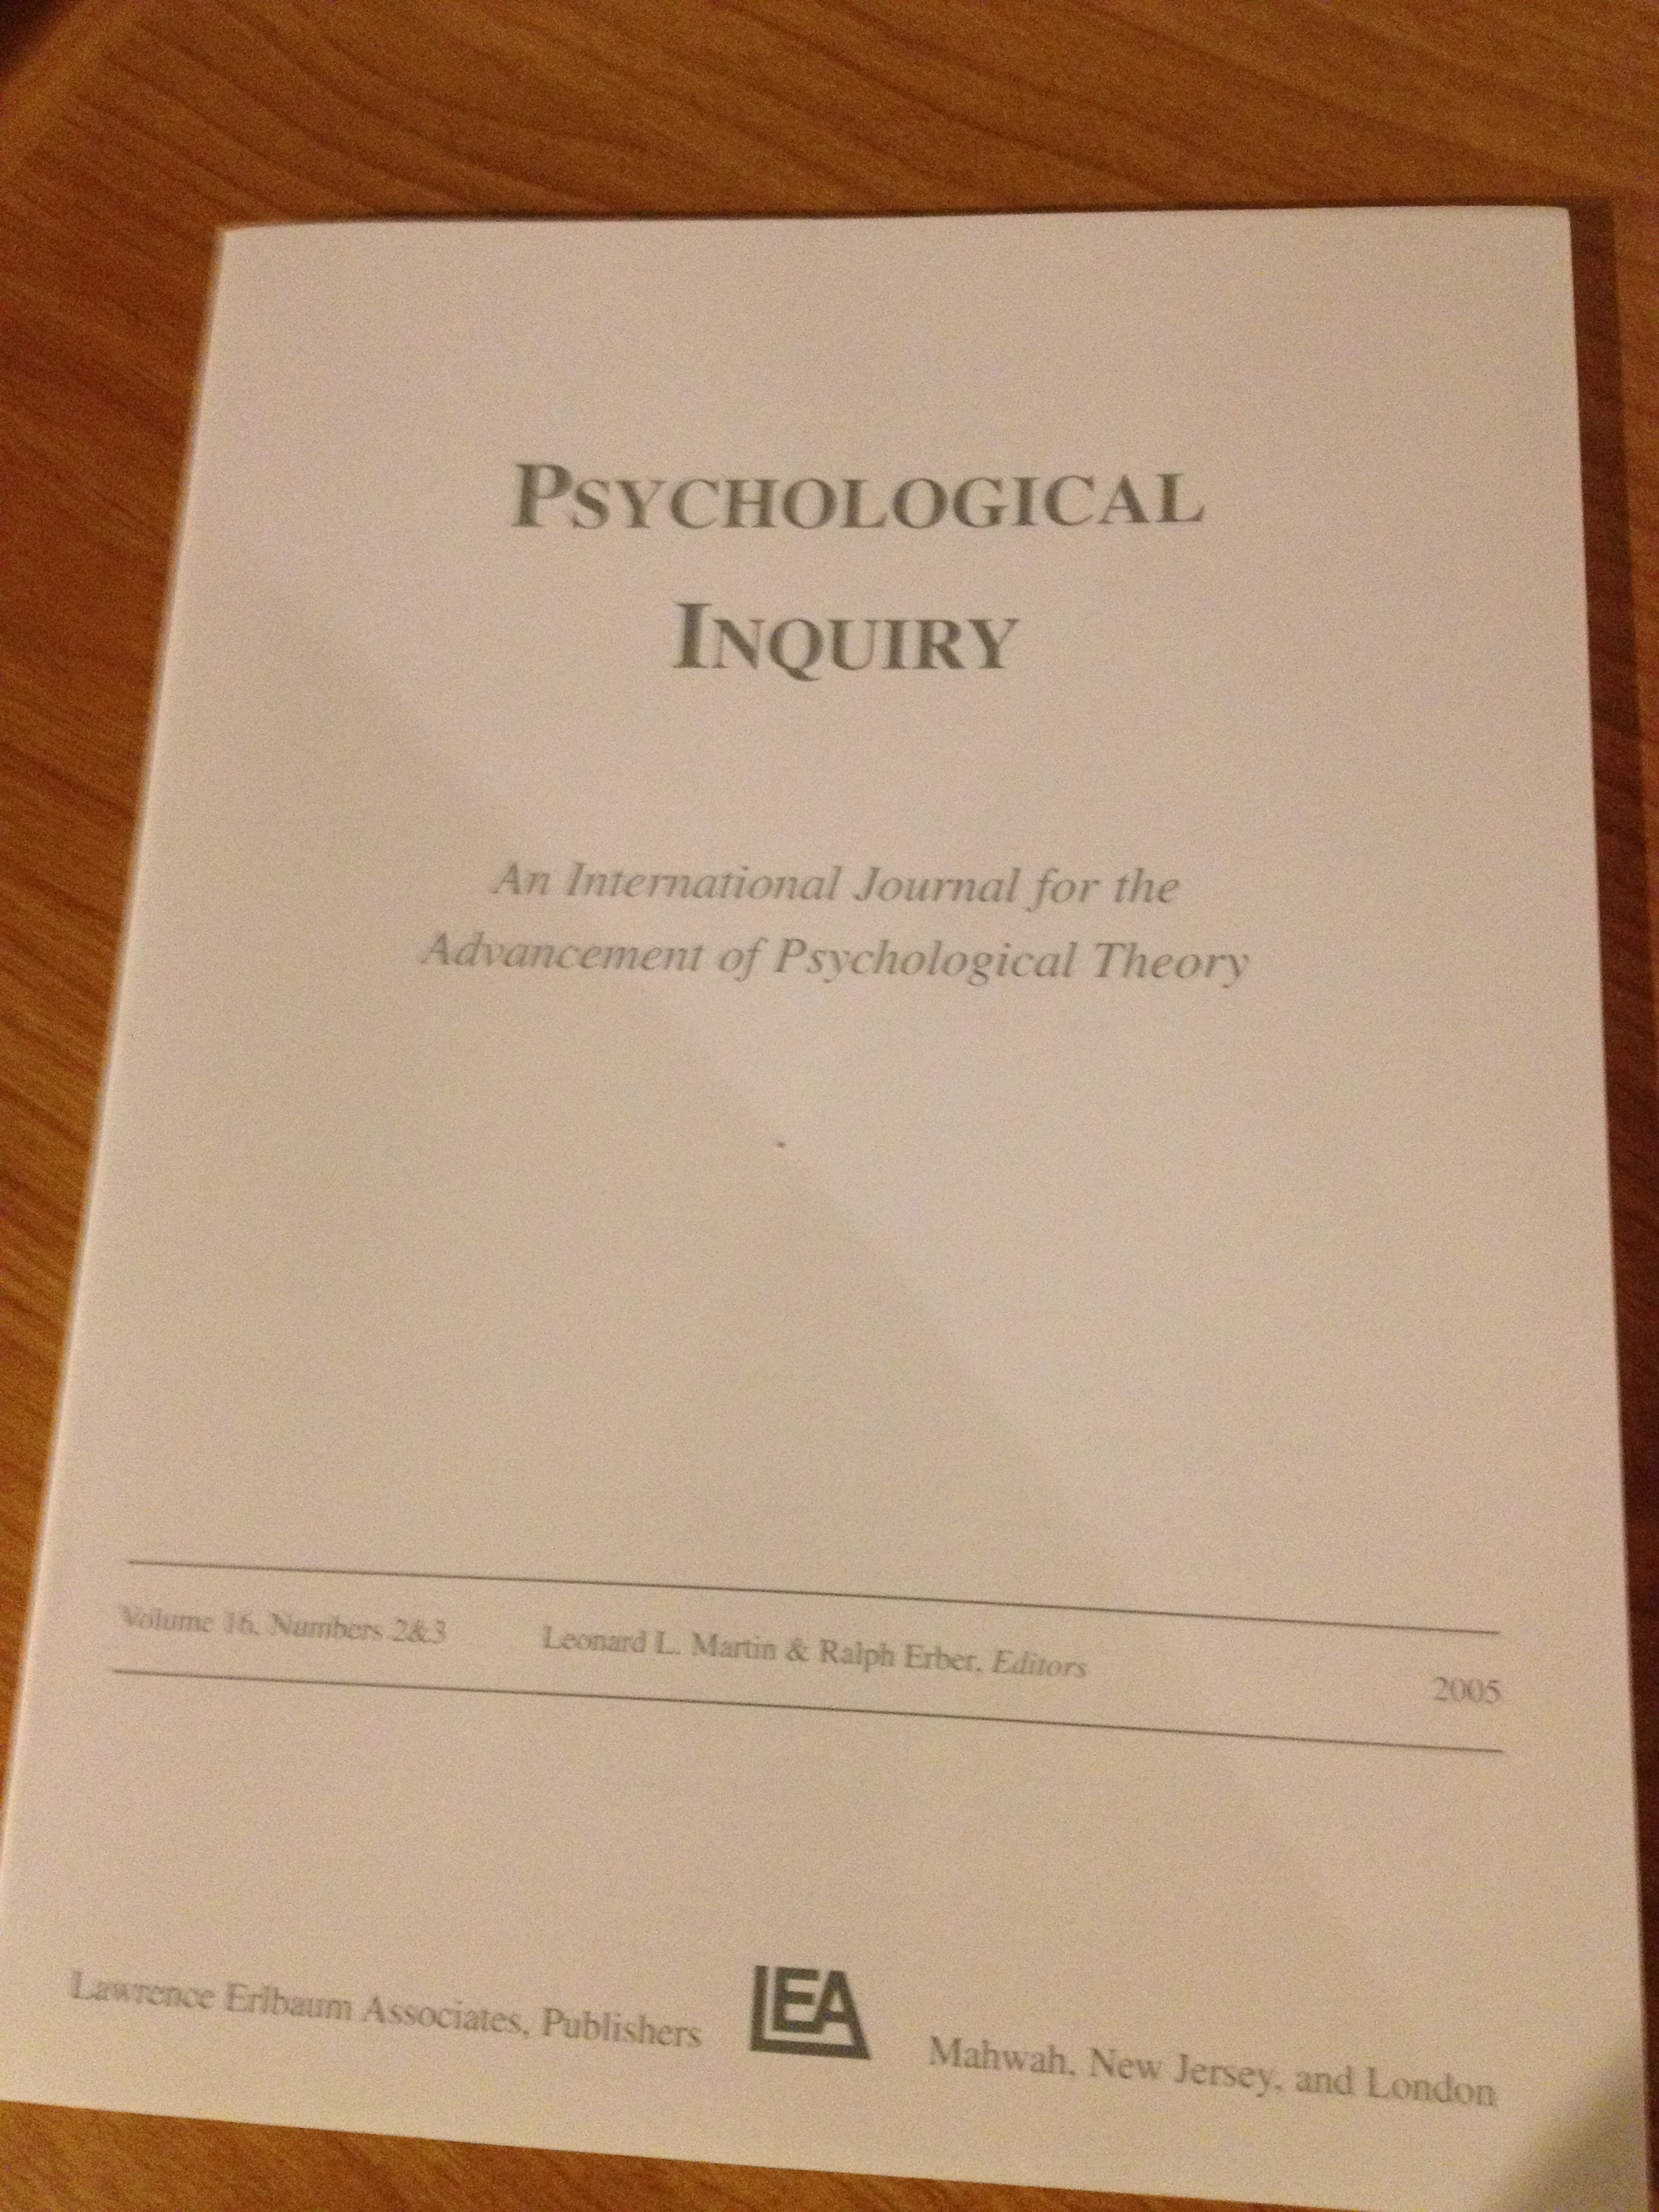 psychological inquiry Cognitive psychology other professional activity: co-managing editor for journal  of psychological inquiry member of association for psychological science.